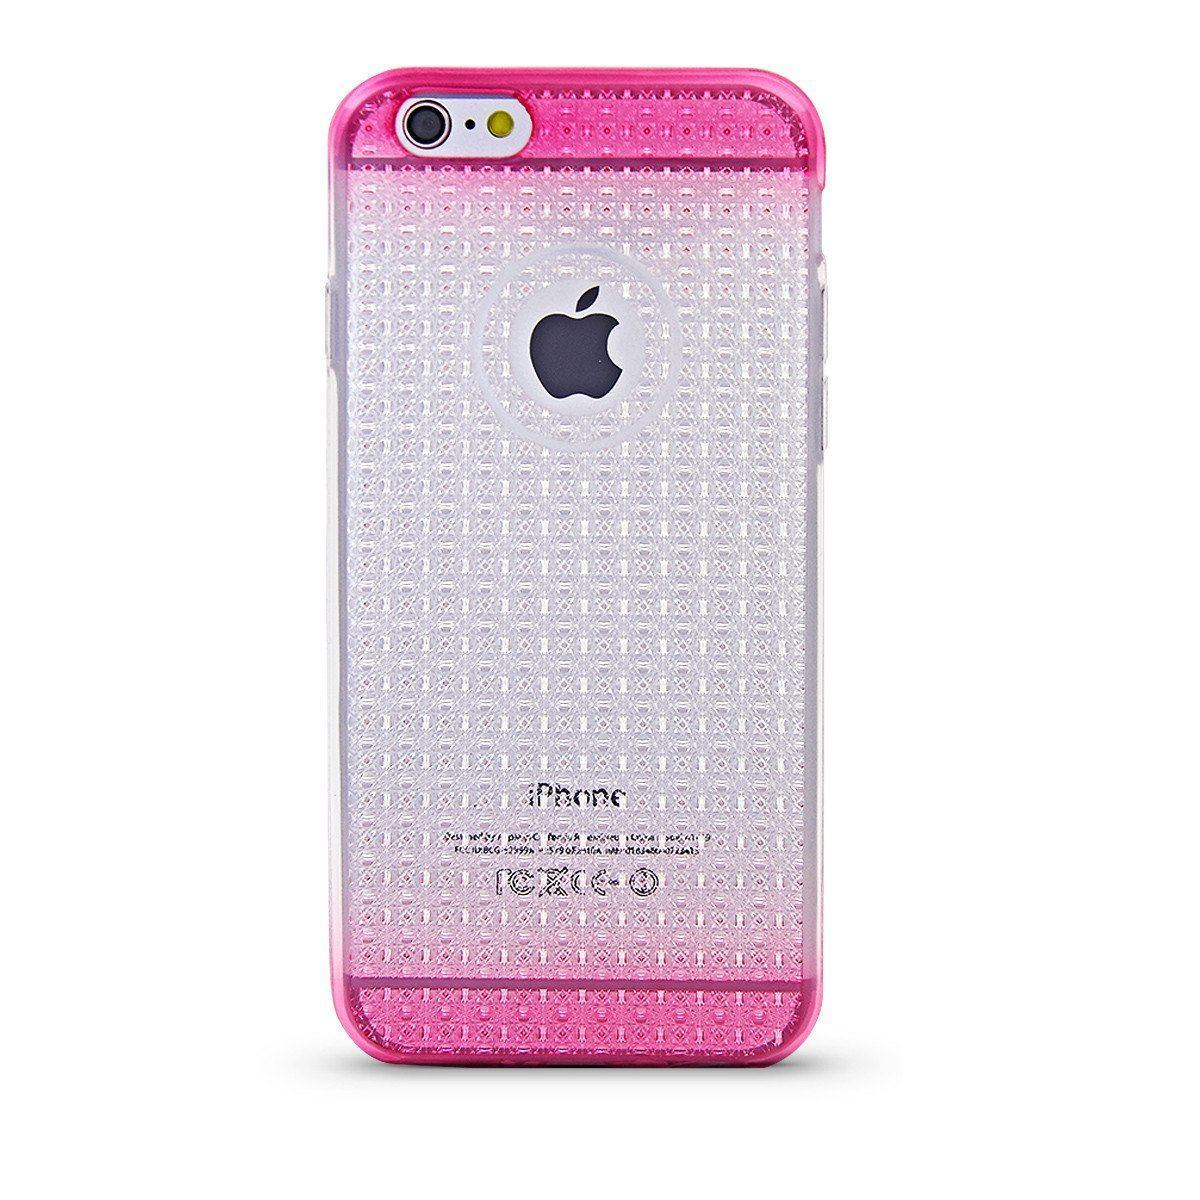 Zoot Case for iPhone 6 Plus - Pink